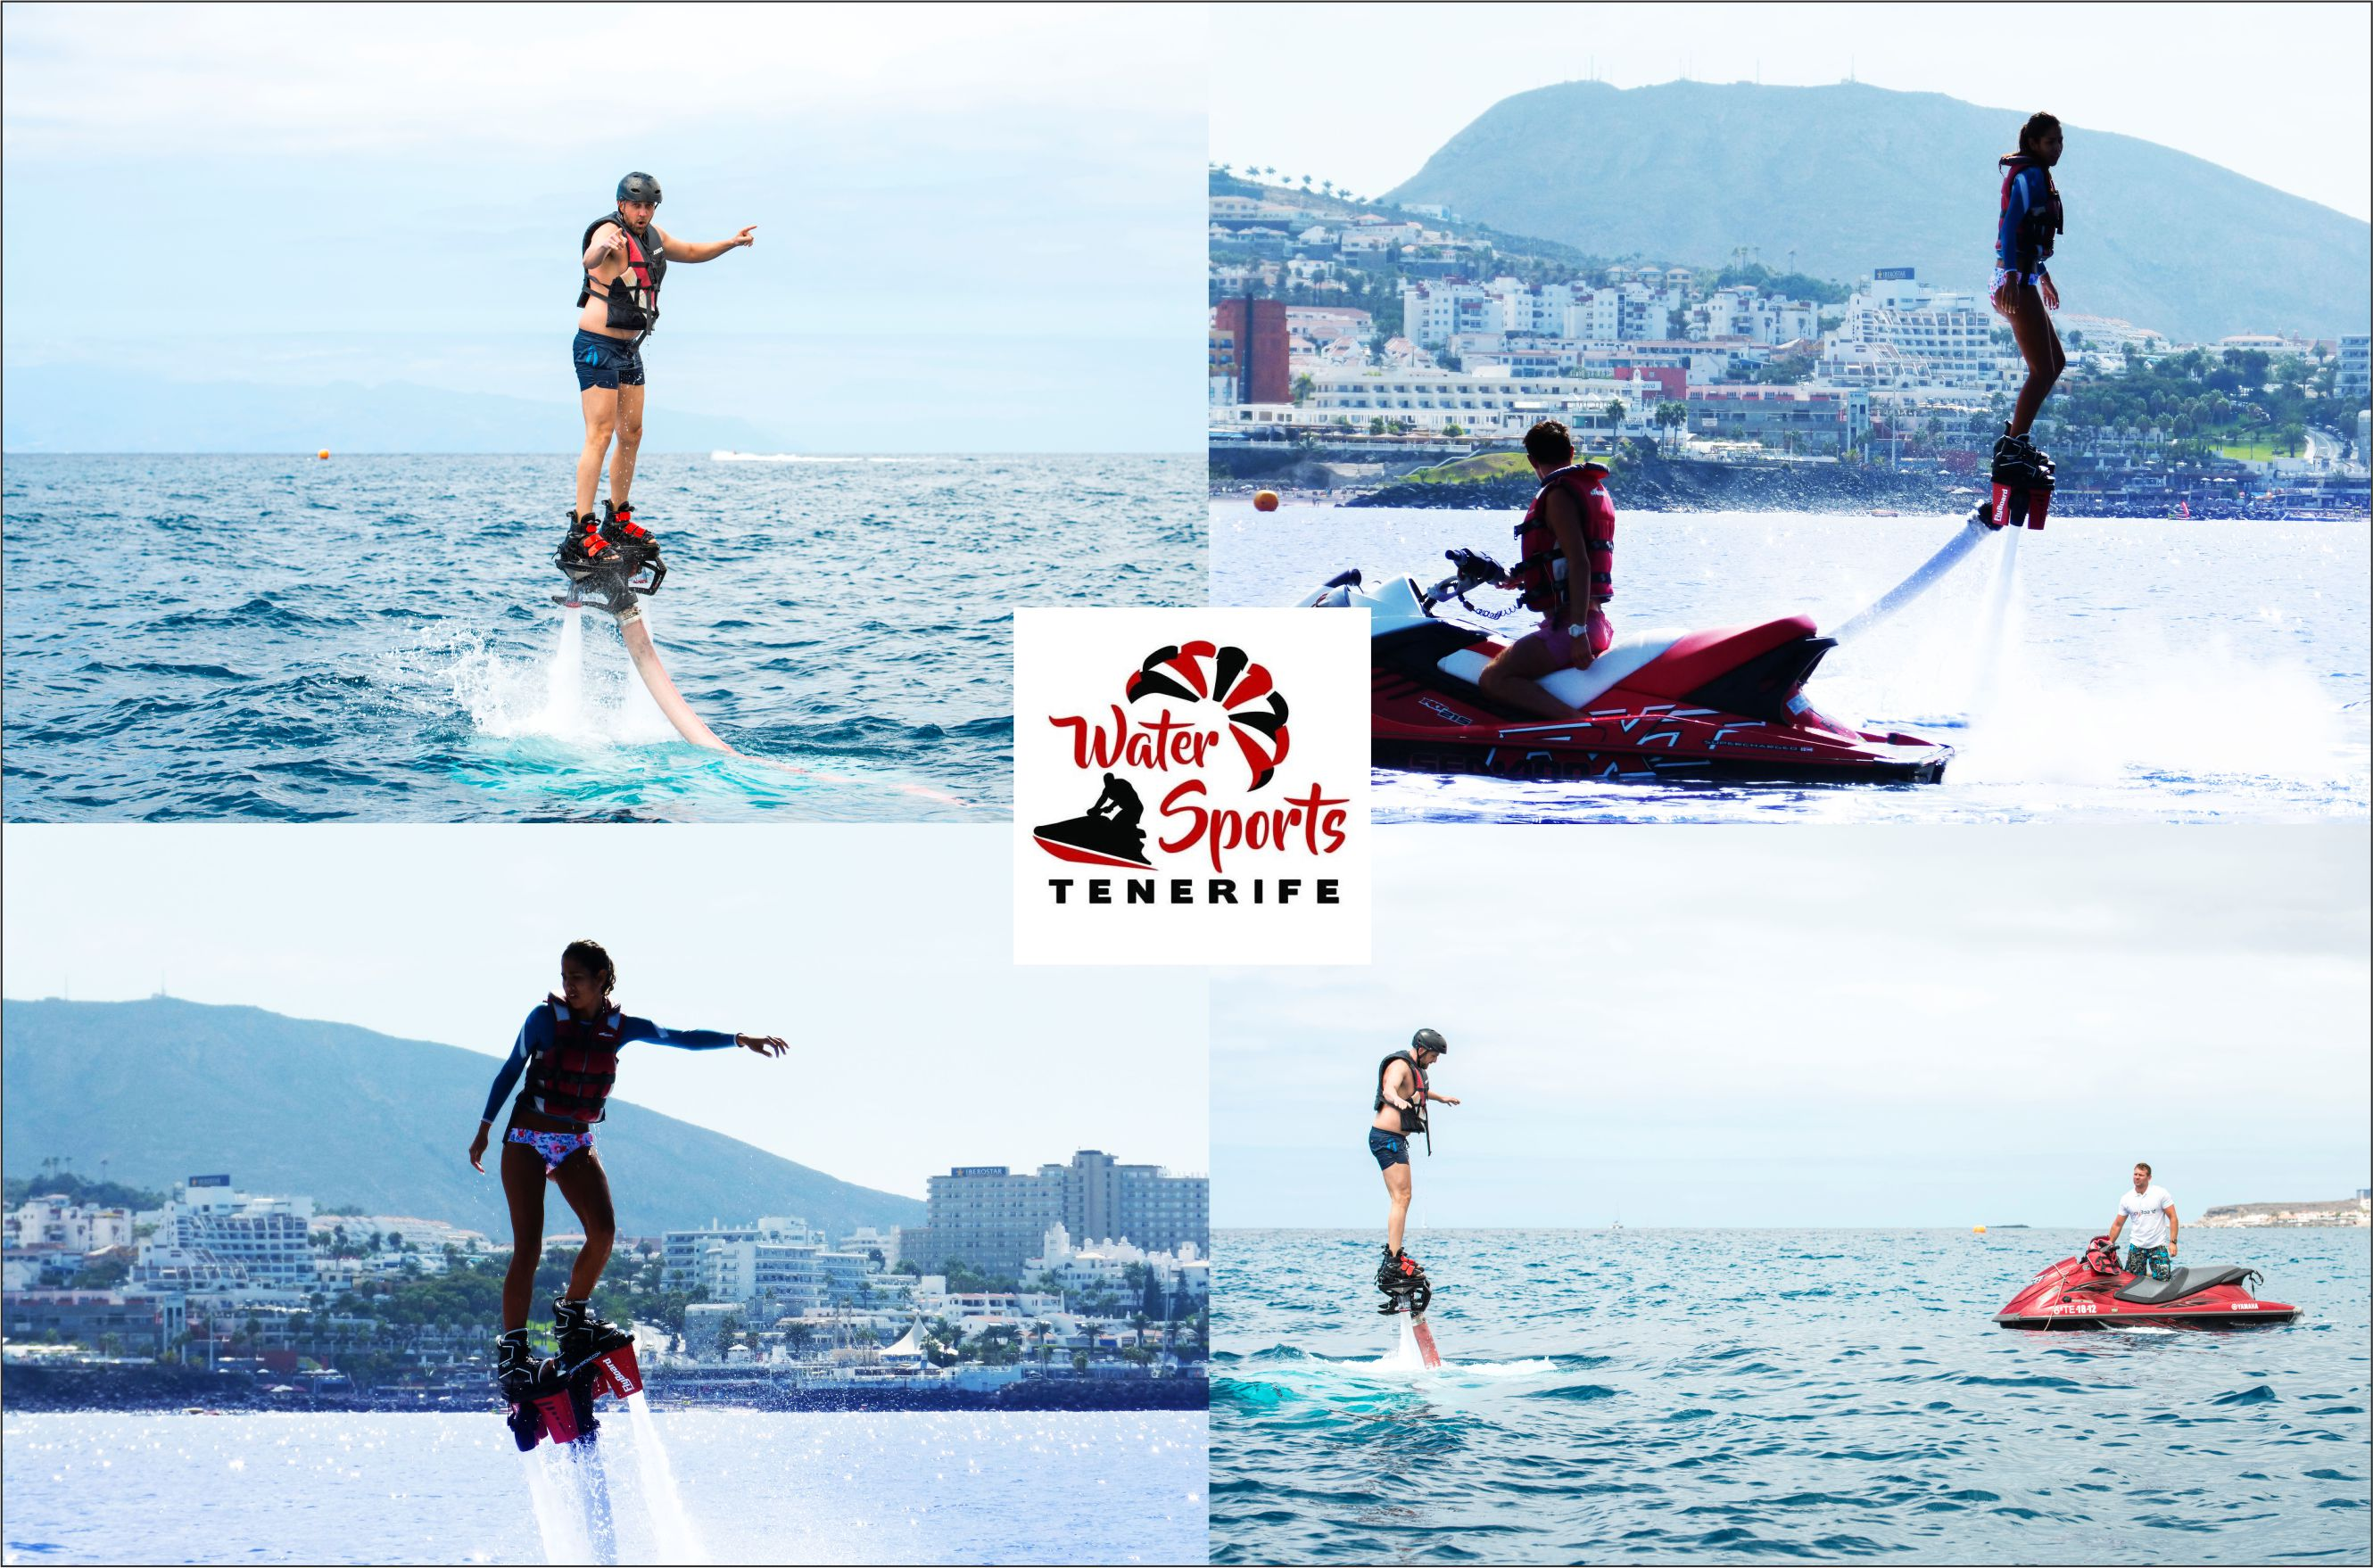 water sports tenerife islas canarias watersport en fañabe el medano